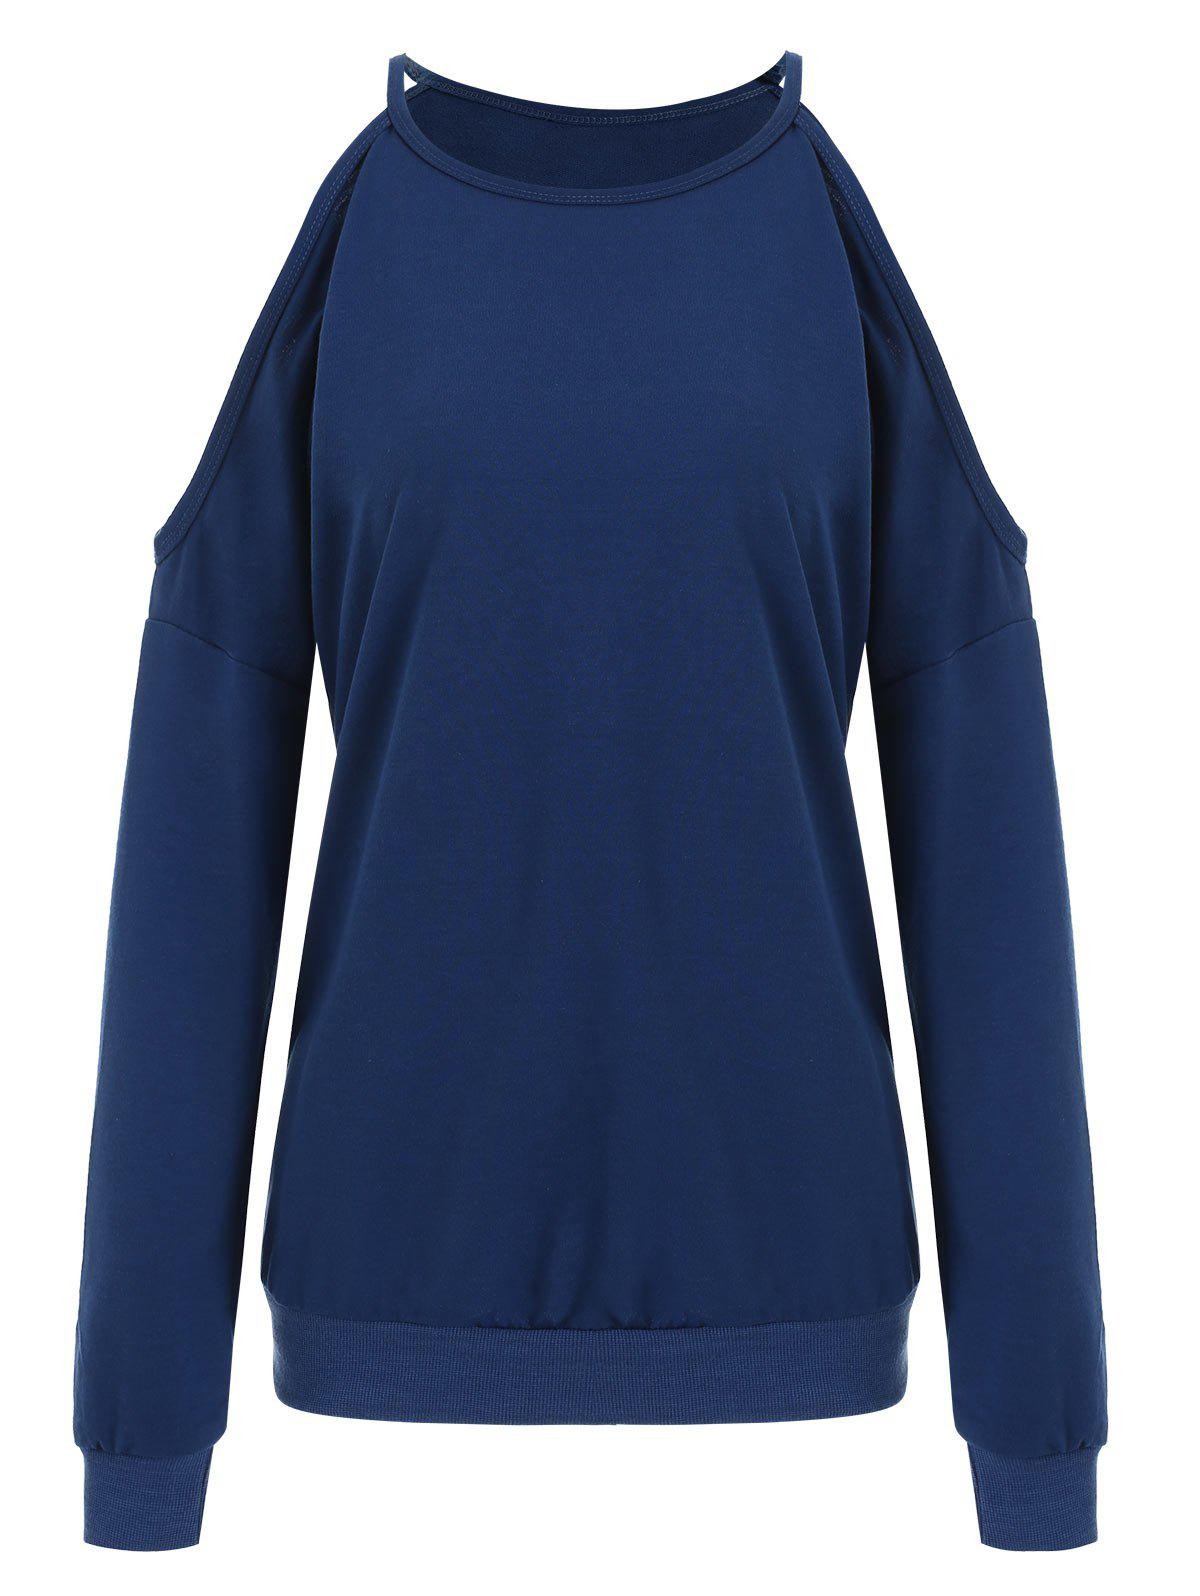 Round Neck Cold Shoulder Sweatshirt